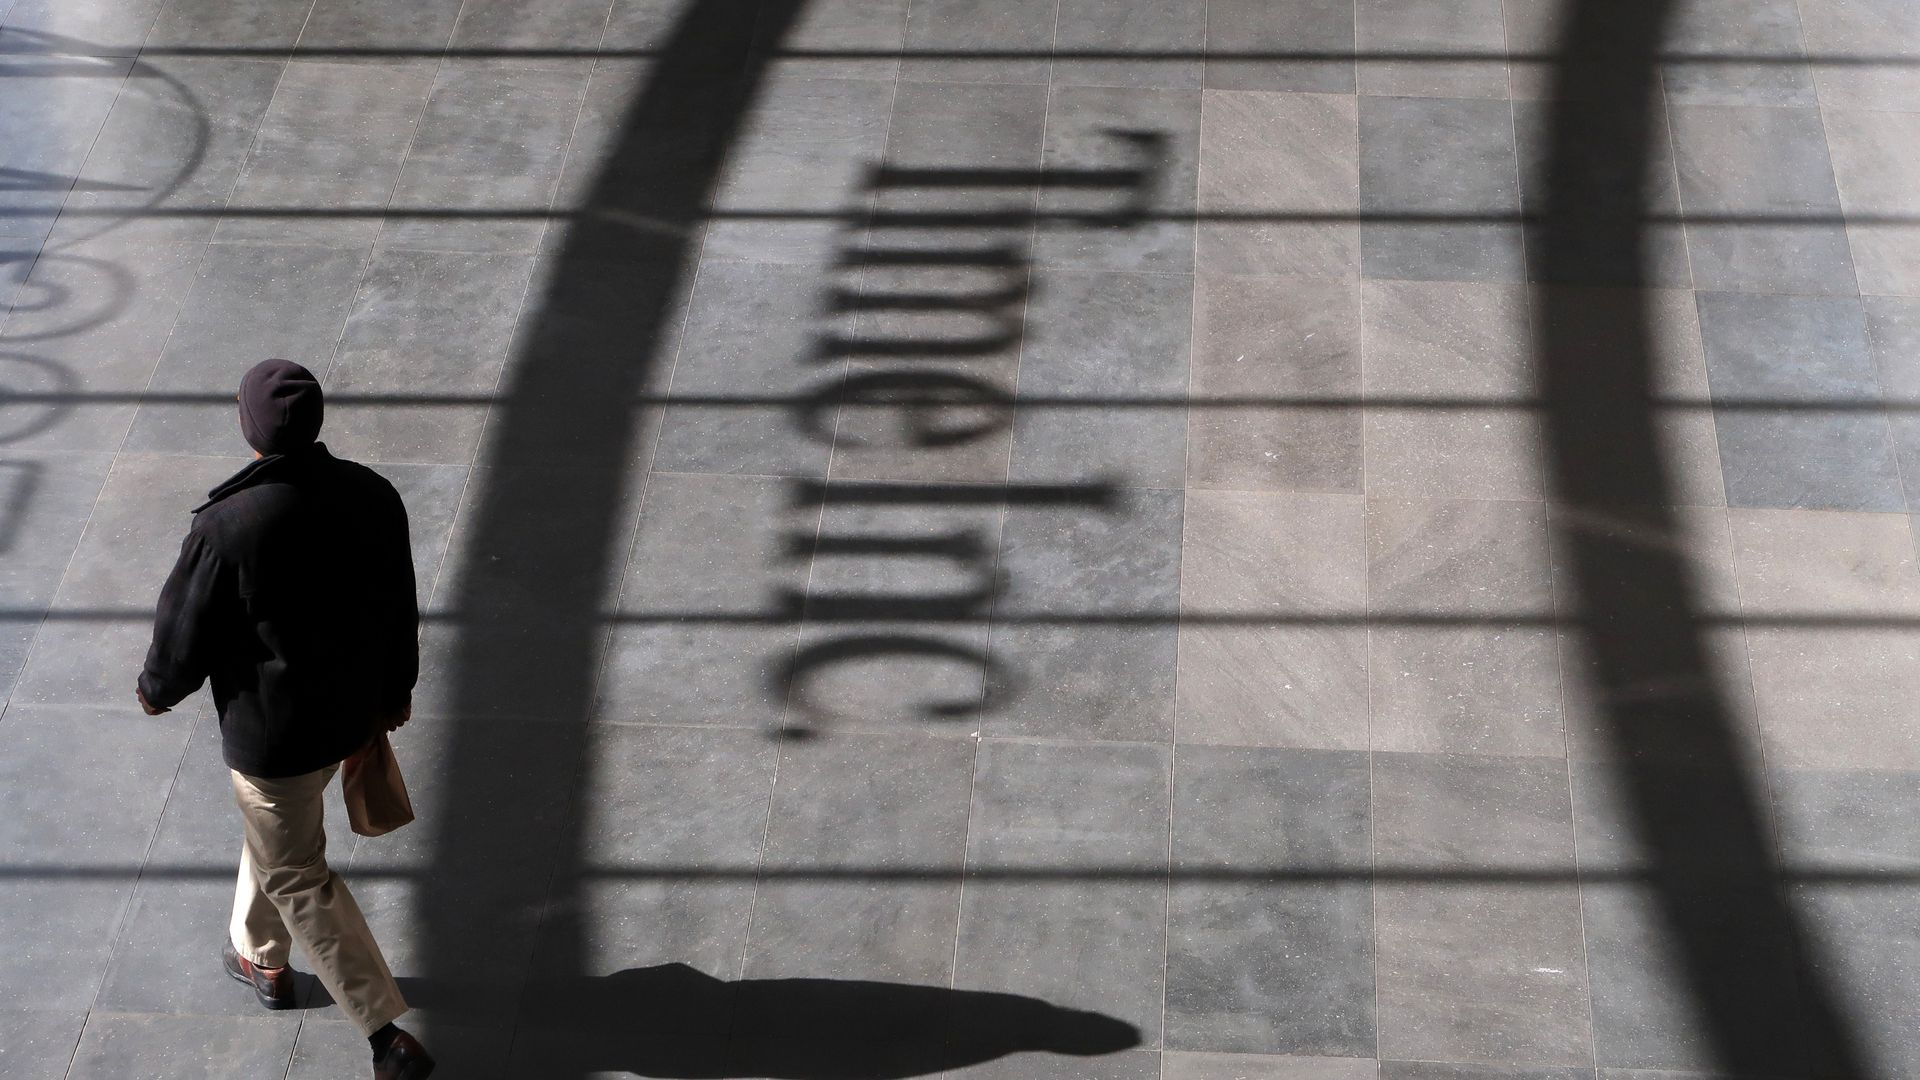 Man walking past shadow of Time Inc. headquarters in lower Manhattan.